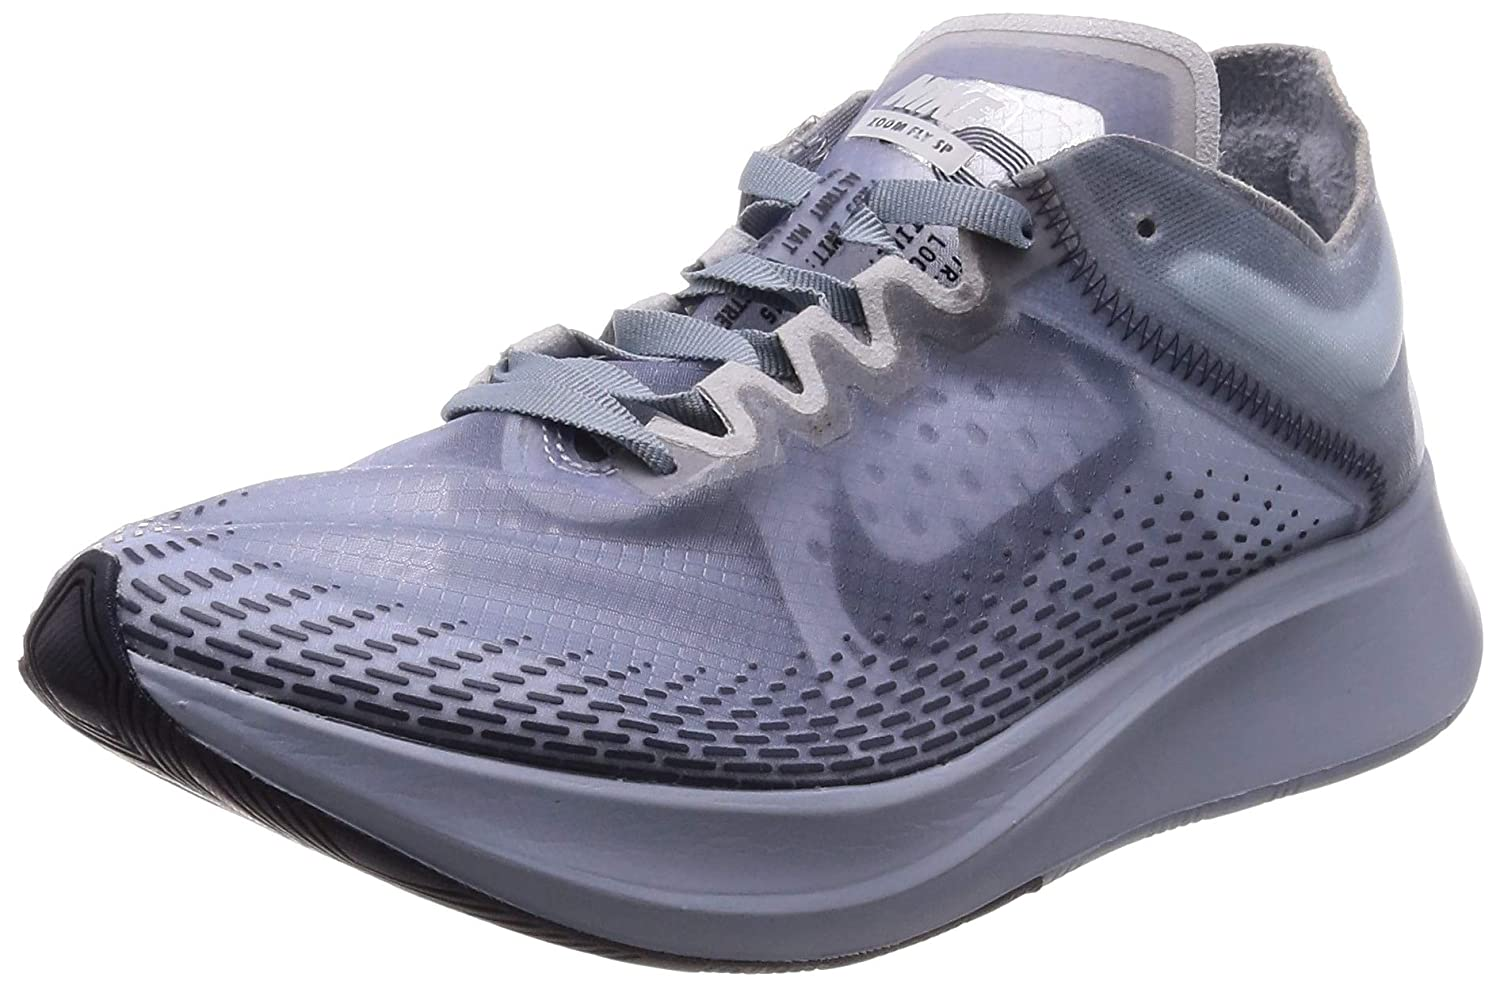 meet bbc7d ff5f0 Amazon.com   NIKE Men s Zoom Fly SP Fast, Obsidian Mist Obsidian-Pure  Platinum, 10 M US   Shoes